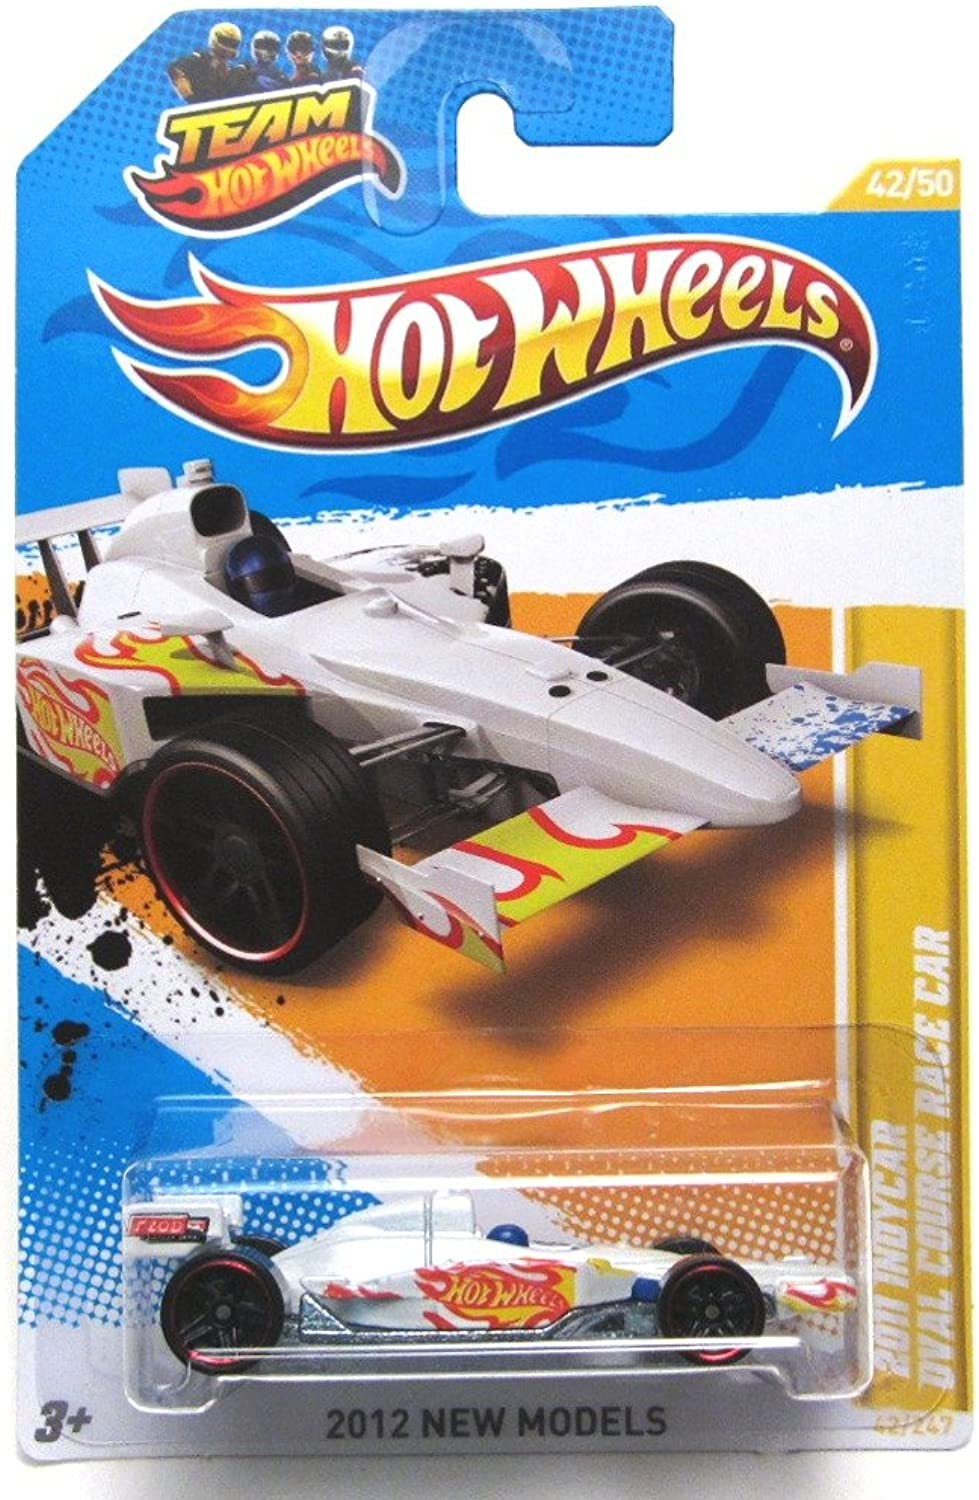 2012 Hot Wheels New Models 2011 Indycar Oval Course Race Car White  42 247